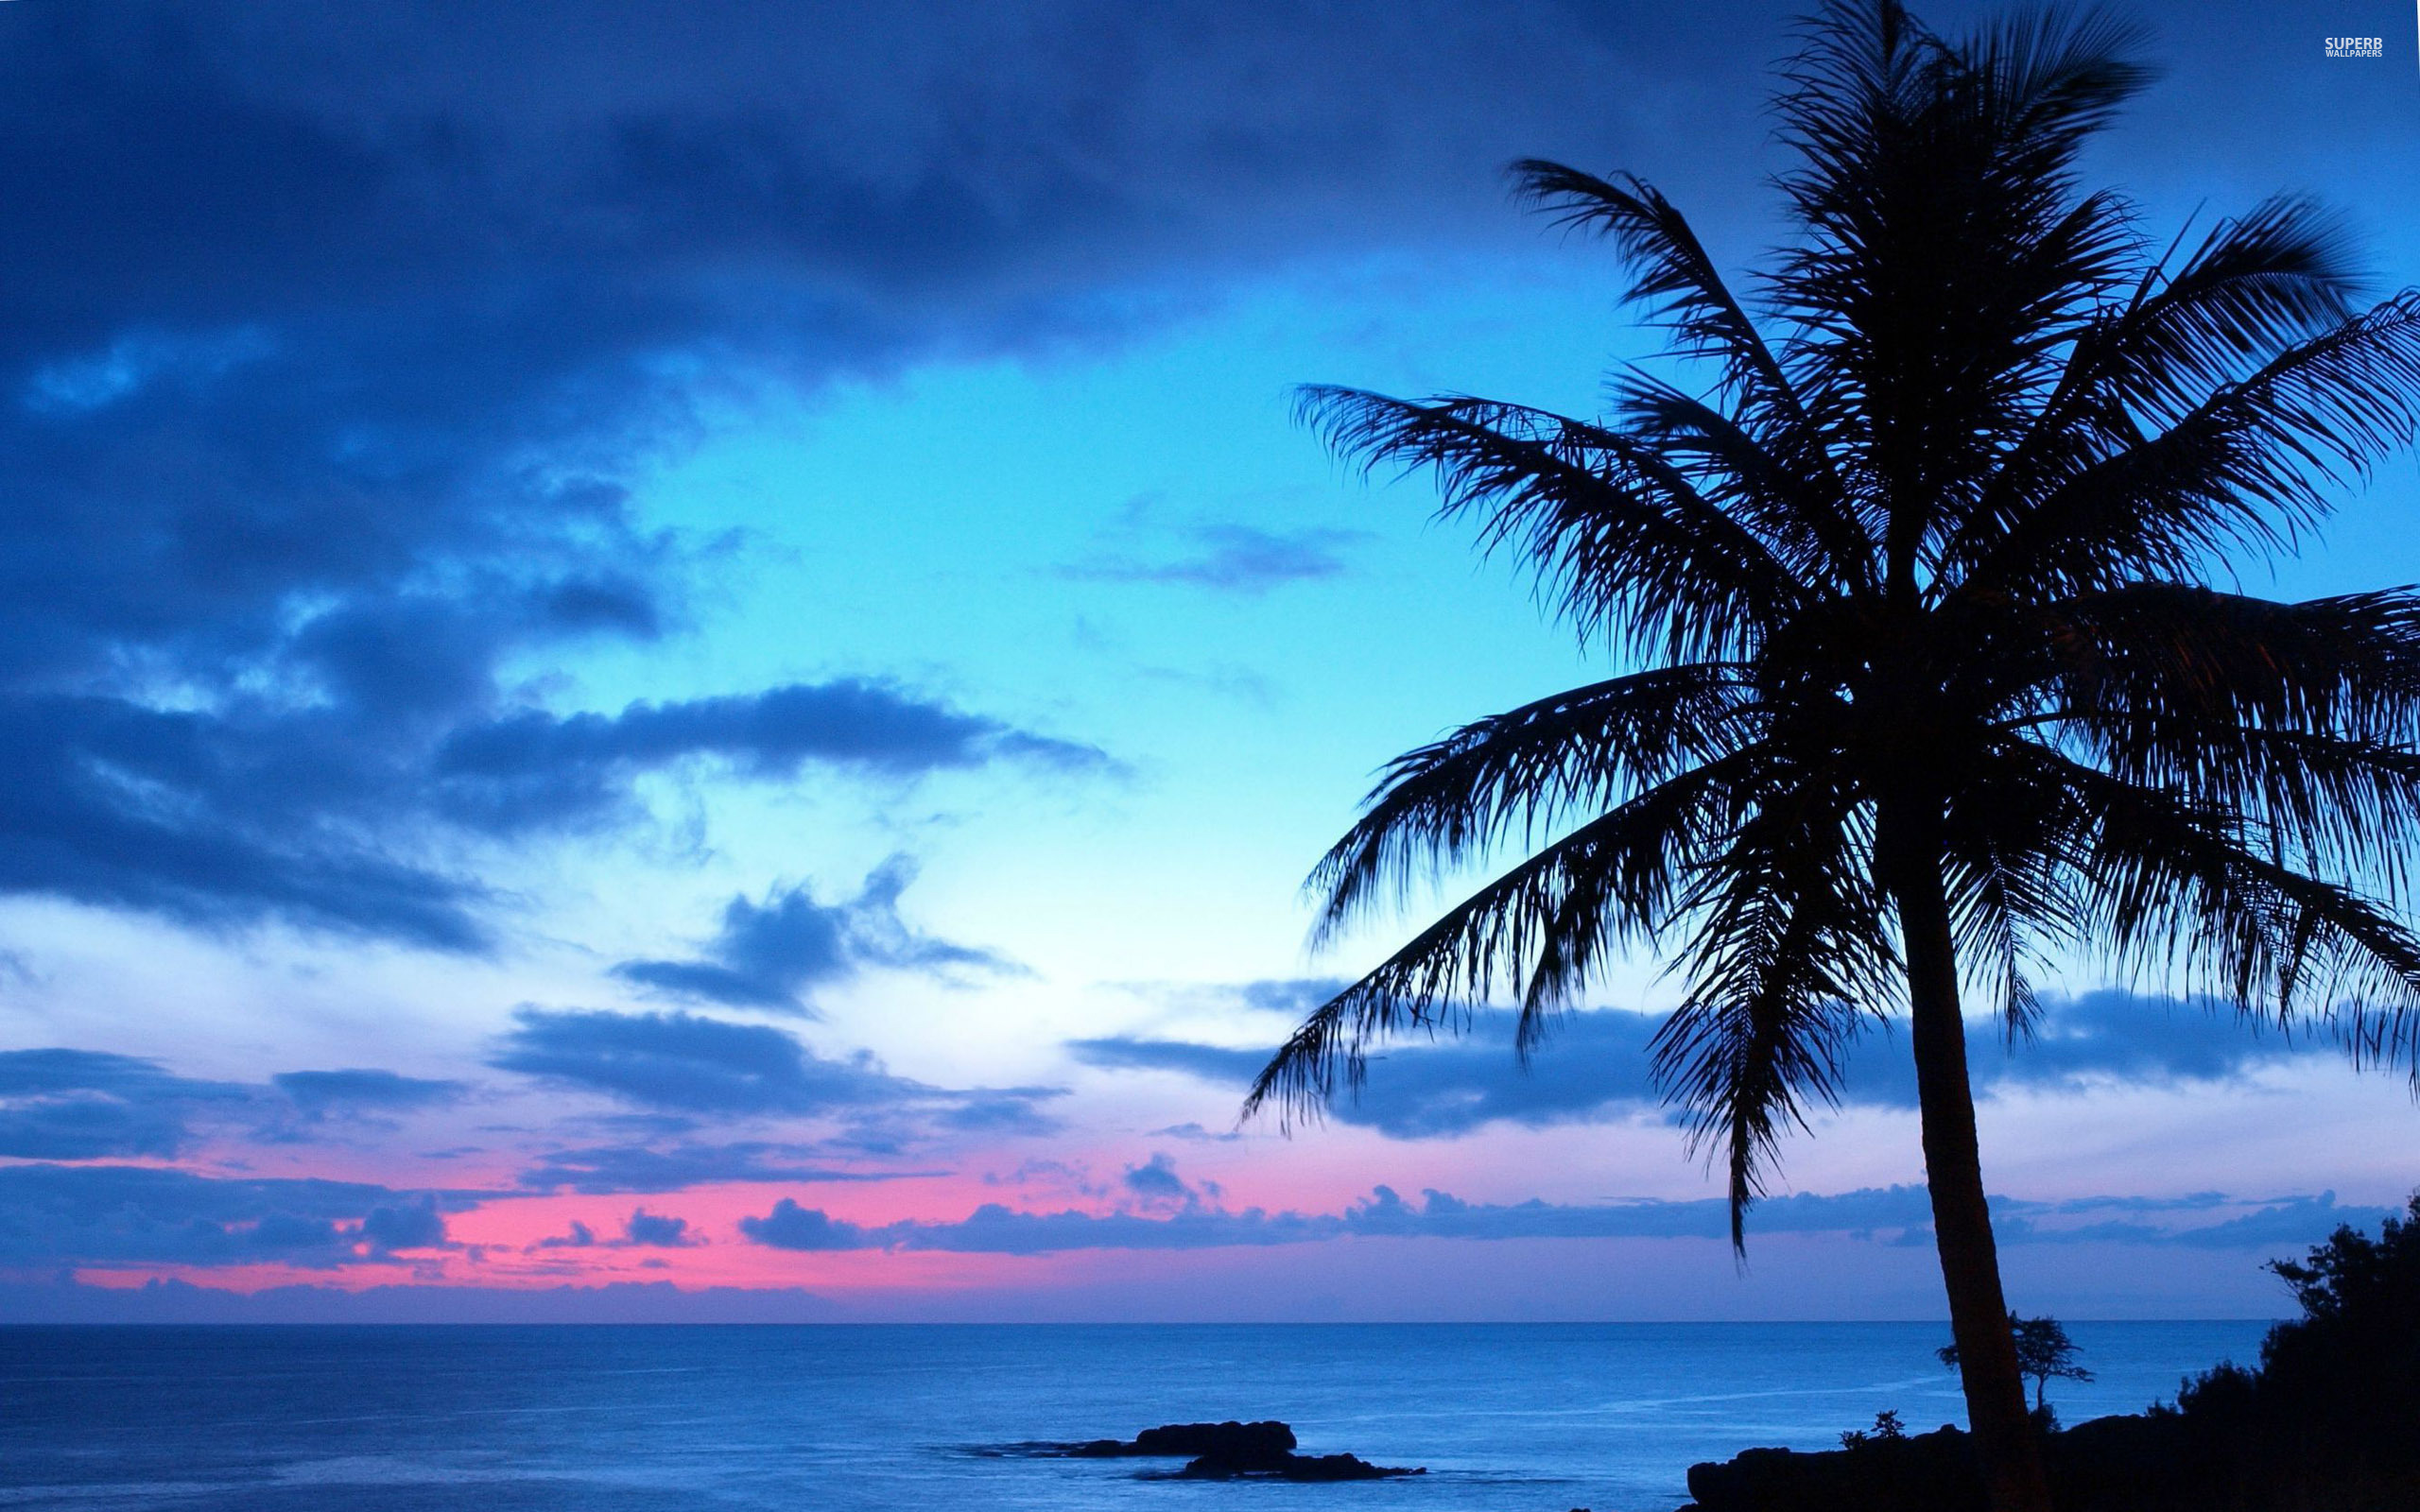 Blue sunset wallpaper 2560x1600